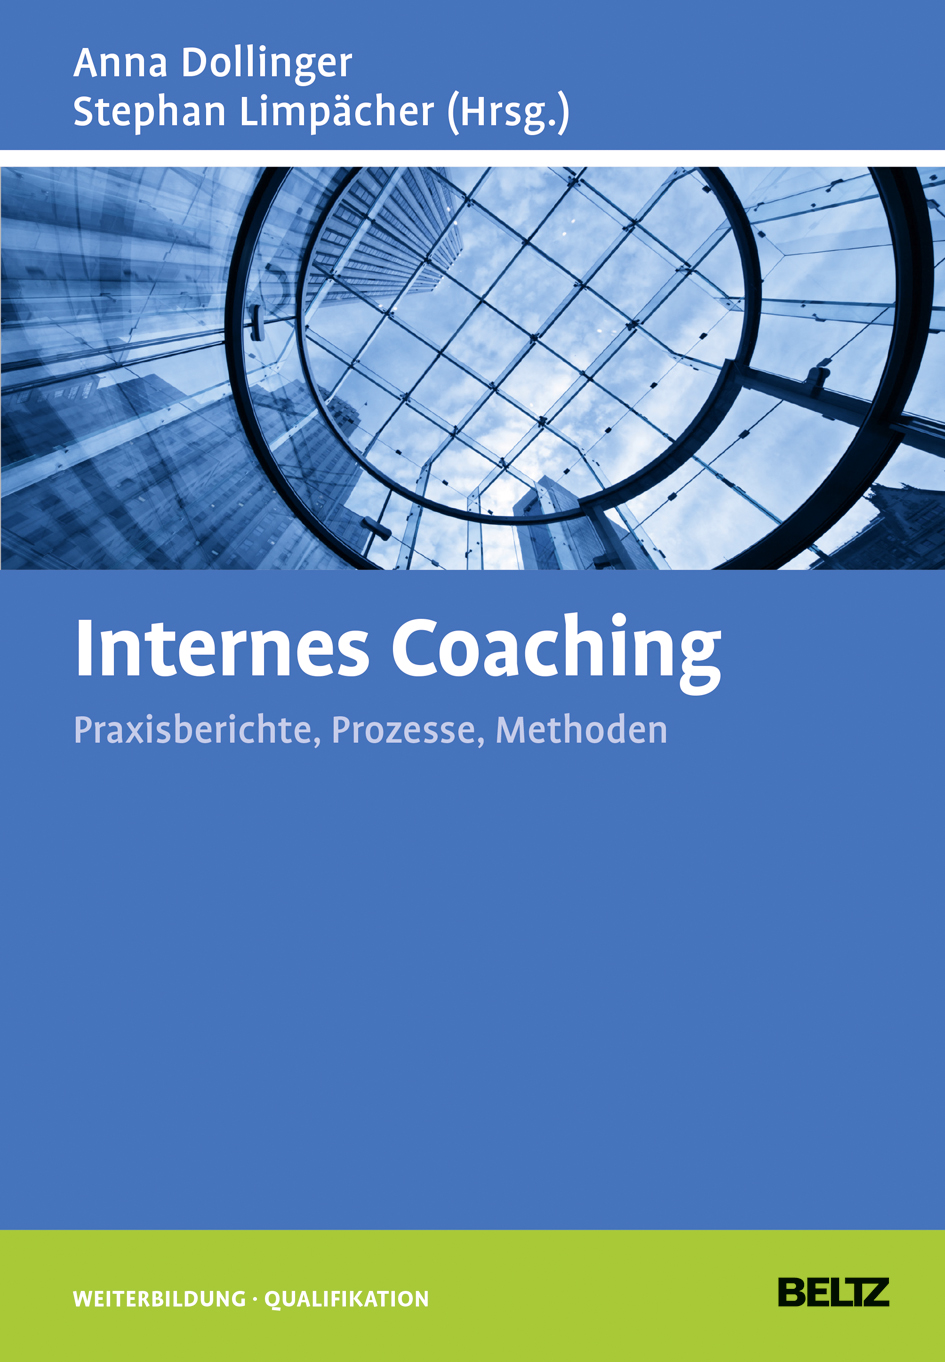 Internes Coaching_Beltz